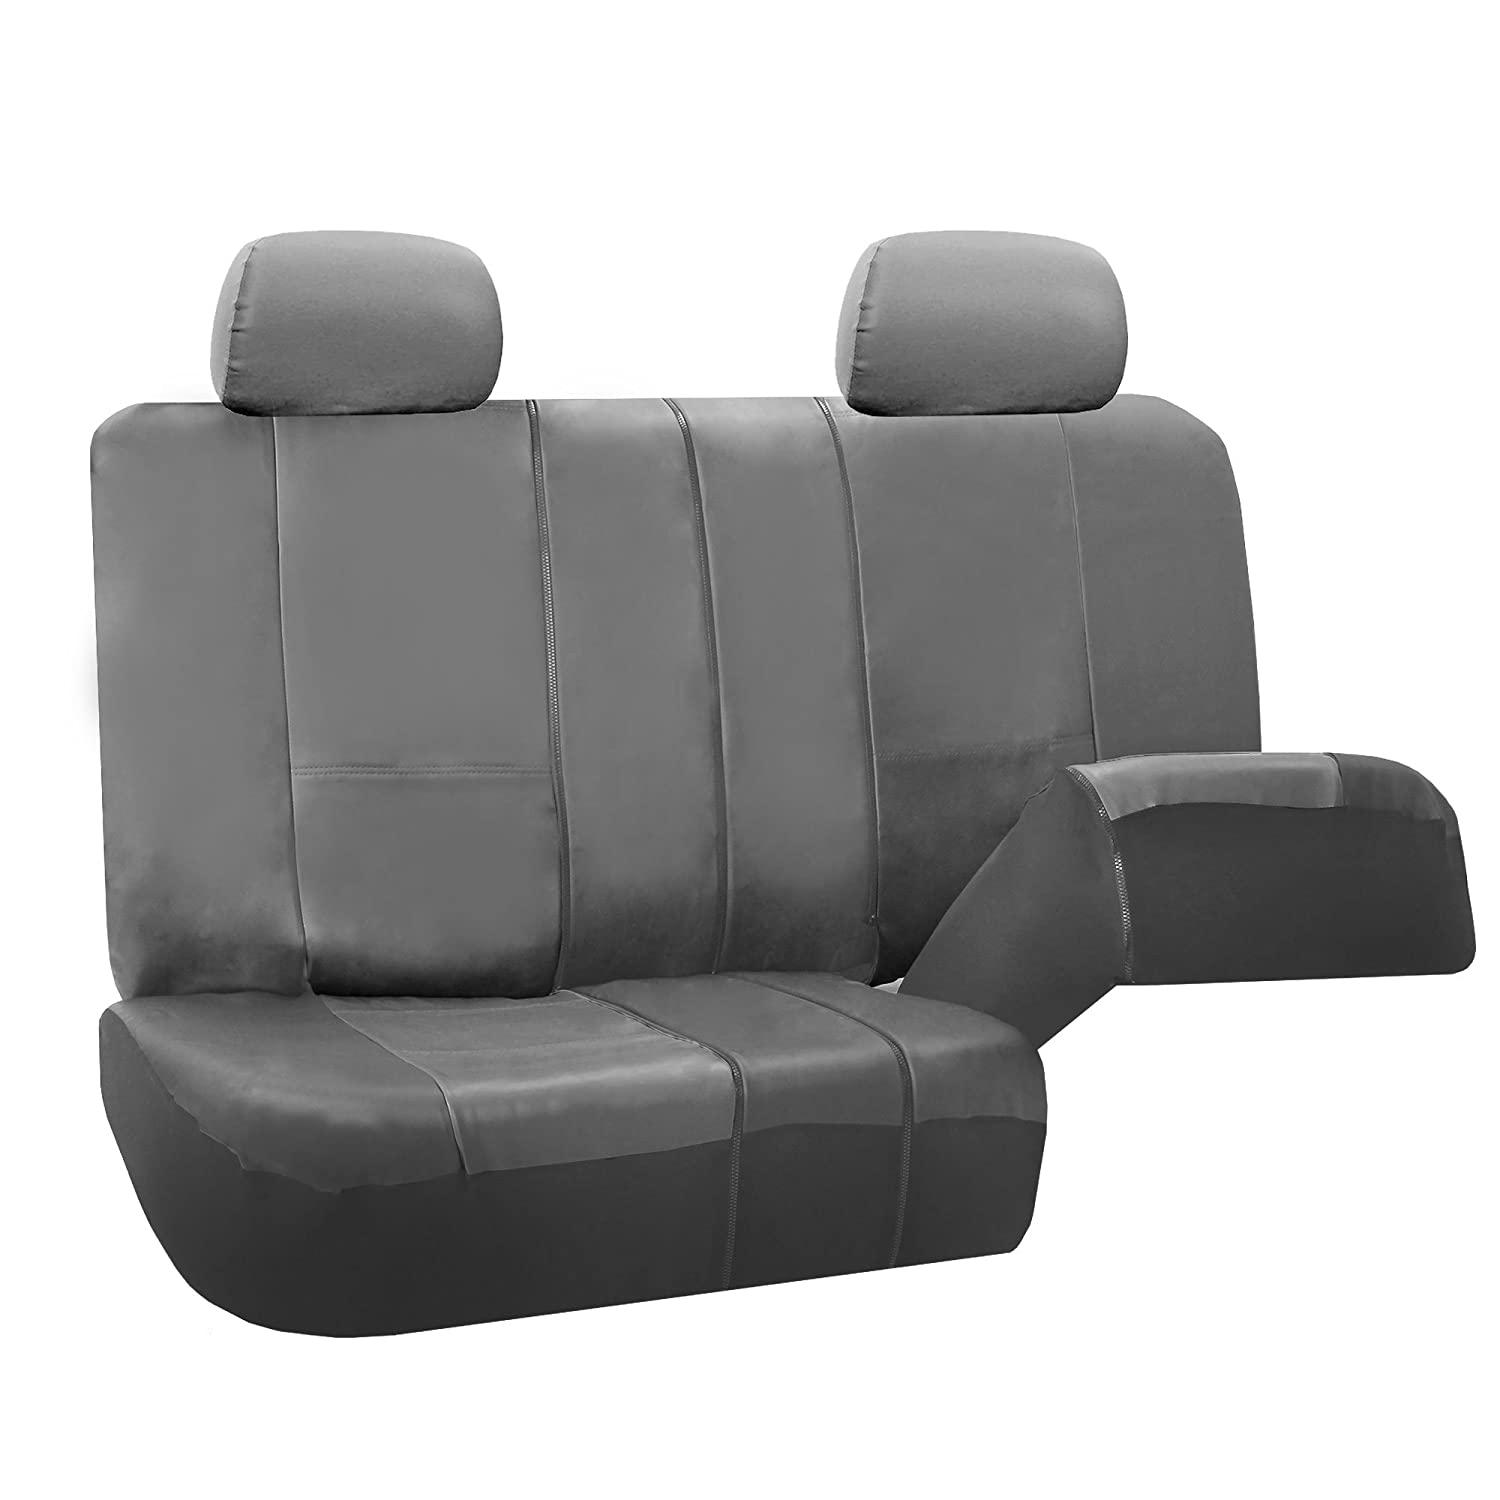 FH-PU002114 Classic PU Leather Car Seat Covers Airbag compatible and Split Bench Solid Grey color FH Group